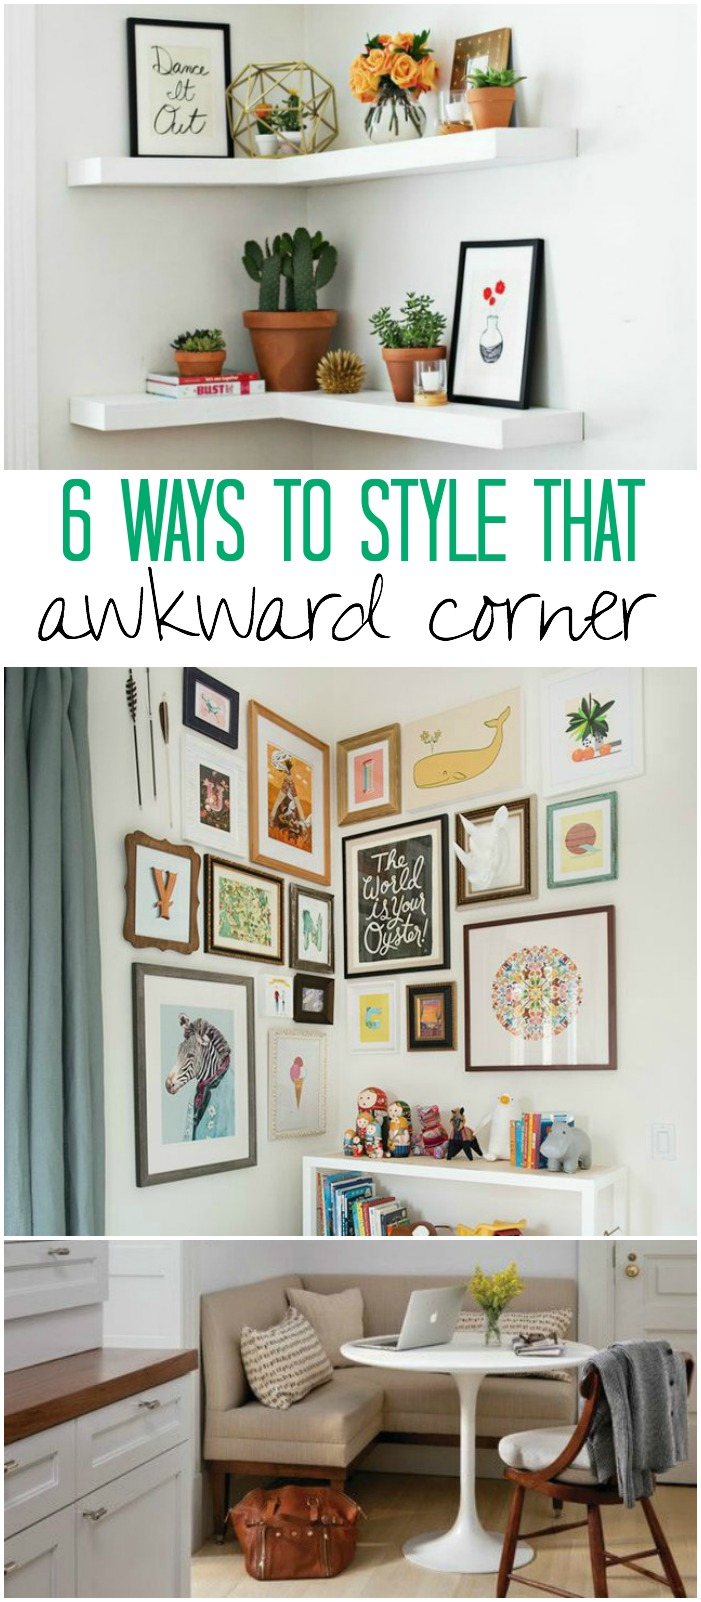 How to style corners in your home